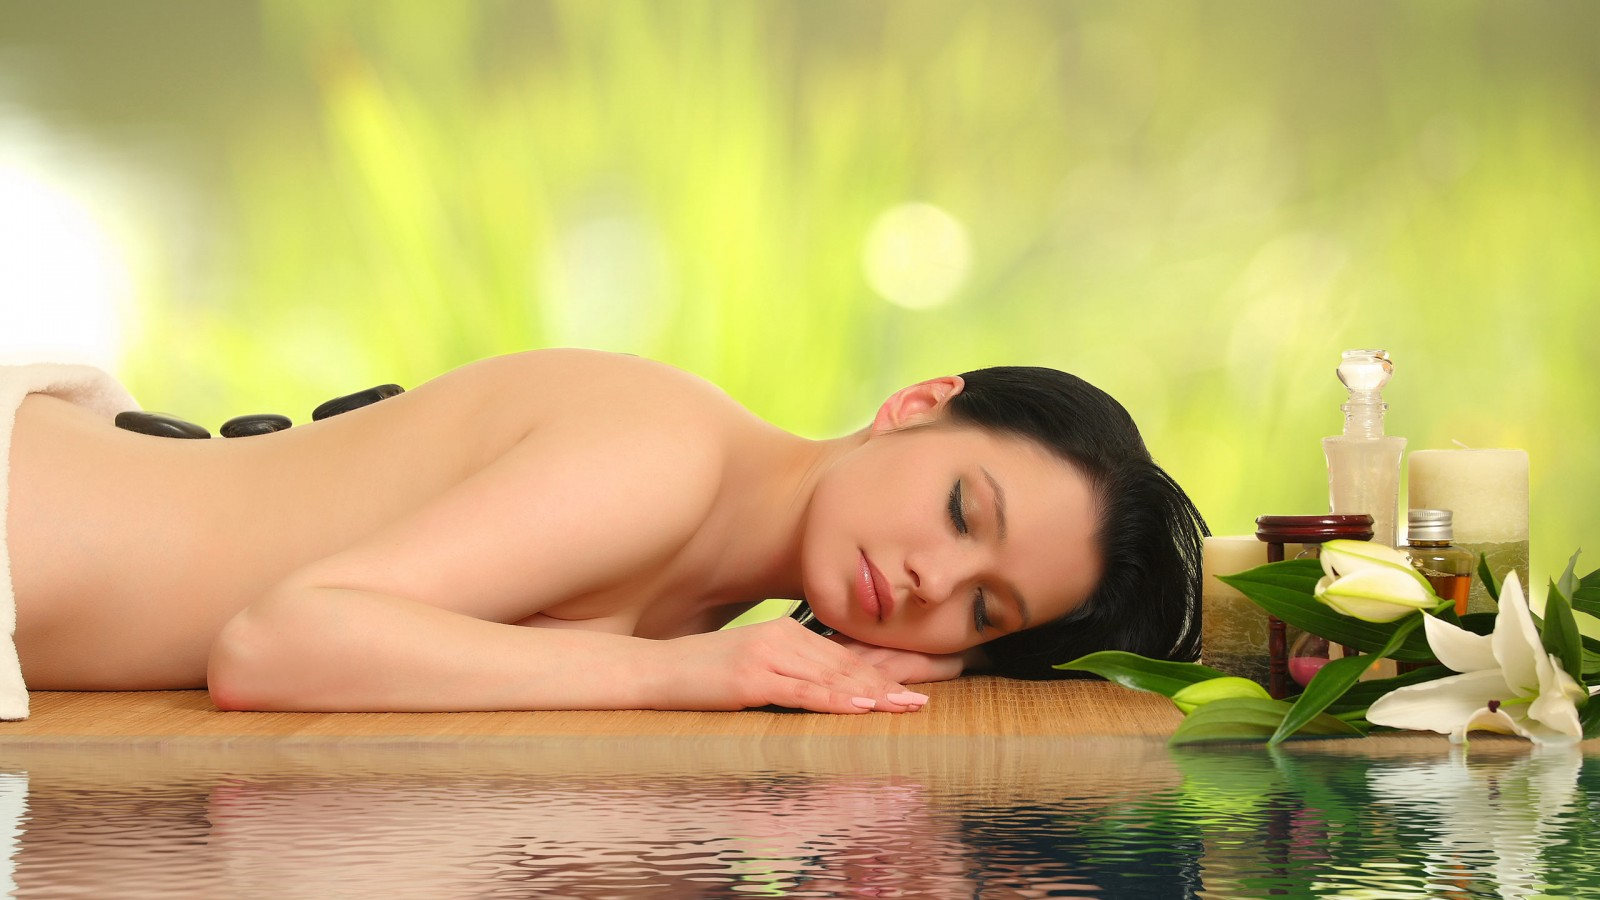 Aqualon Wellness | Januar Angebot: 60 minütige Hot-Stone Massage